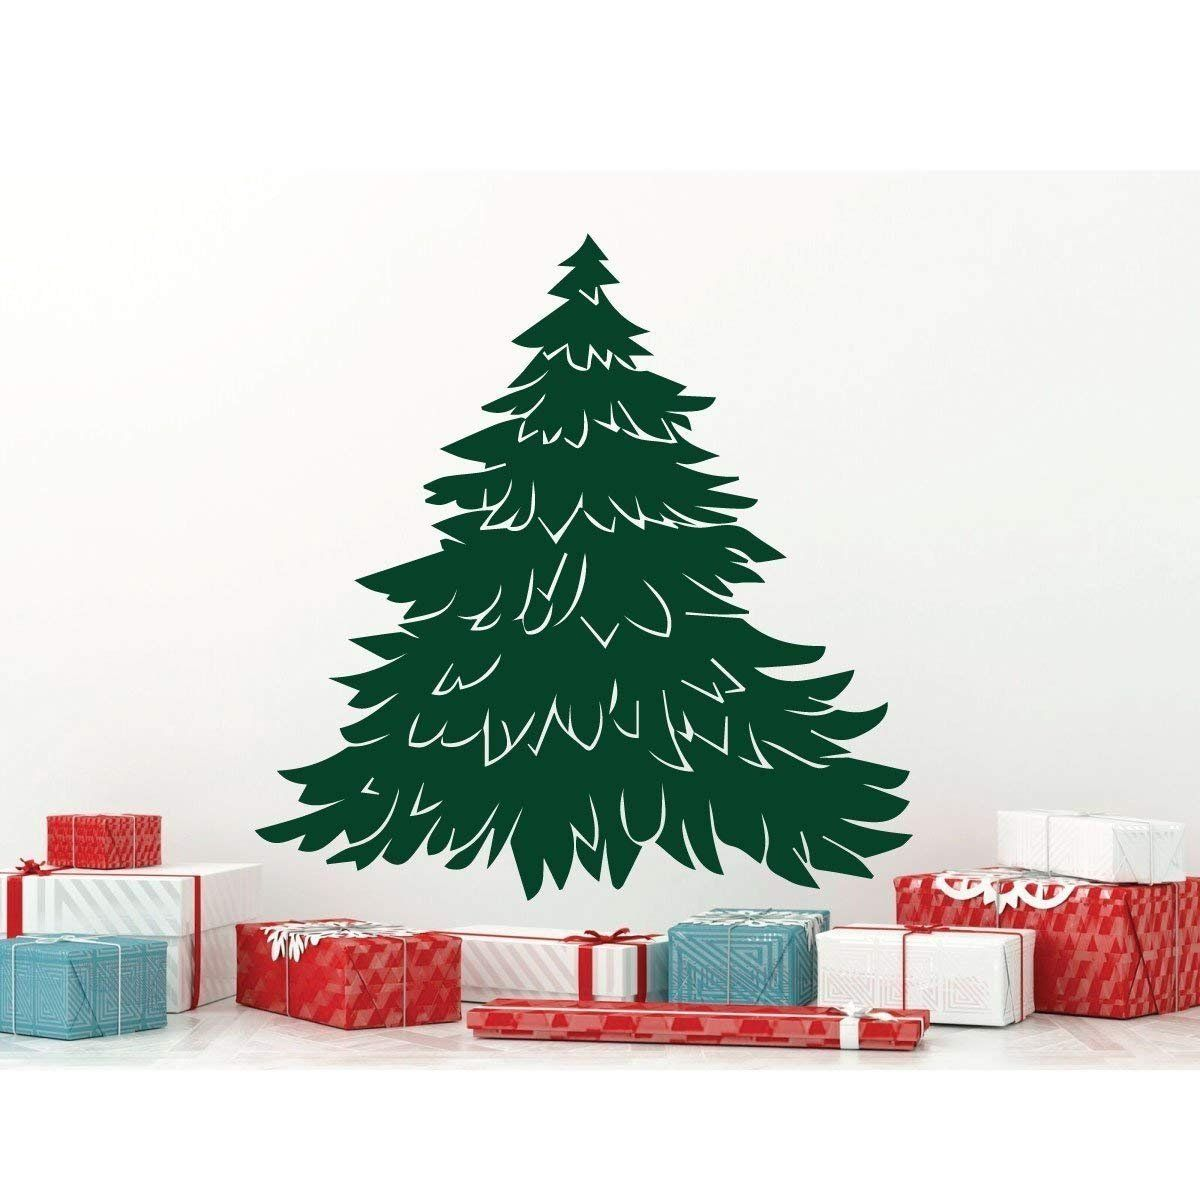 21 Alternative Christmas Tree Ideas - Unique & Modern Replacements ...